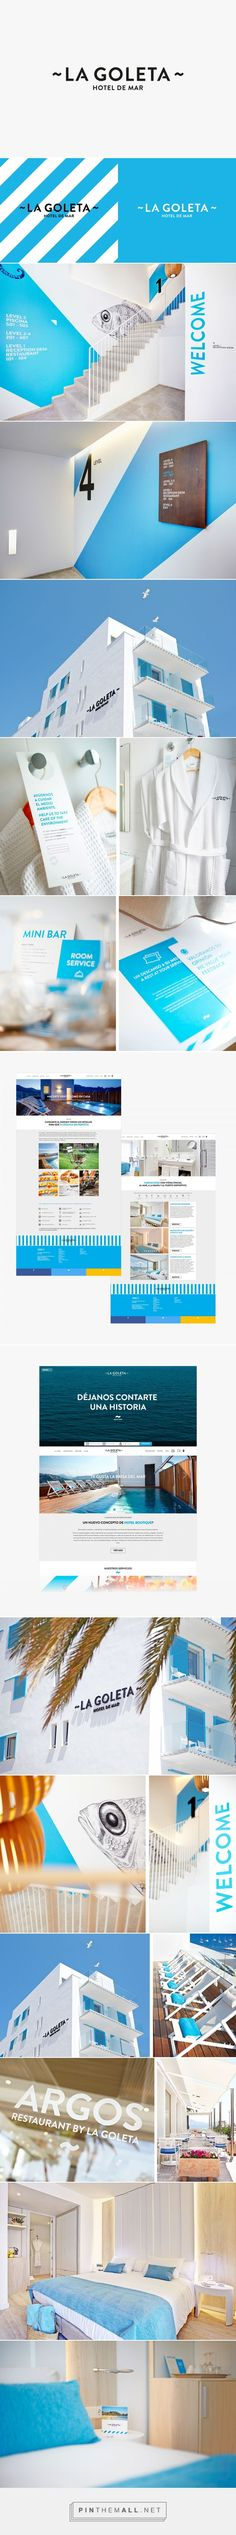 La Goleta Hotel de Mar on Behance - created via https://pinthemall.net